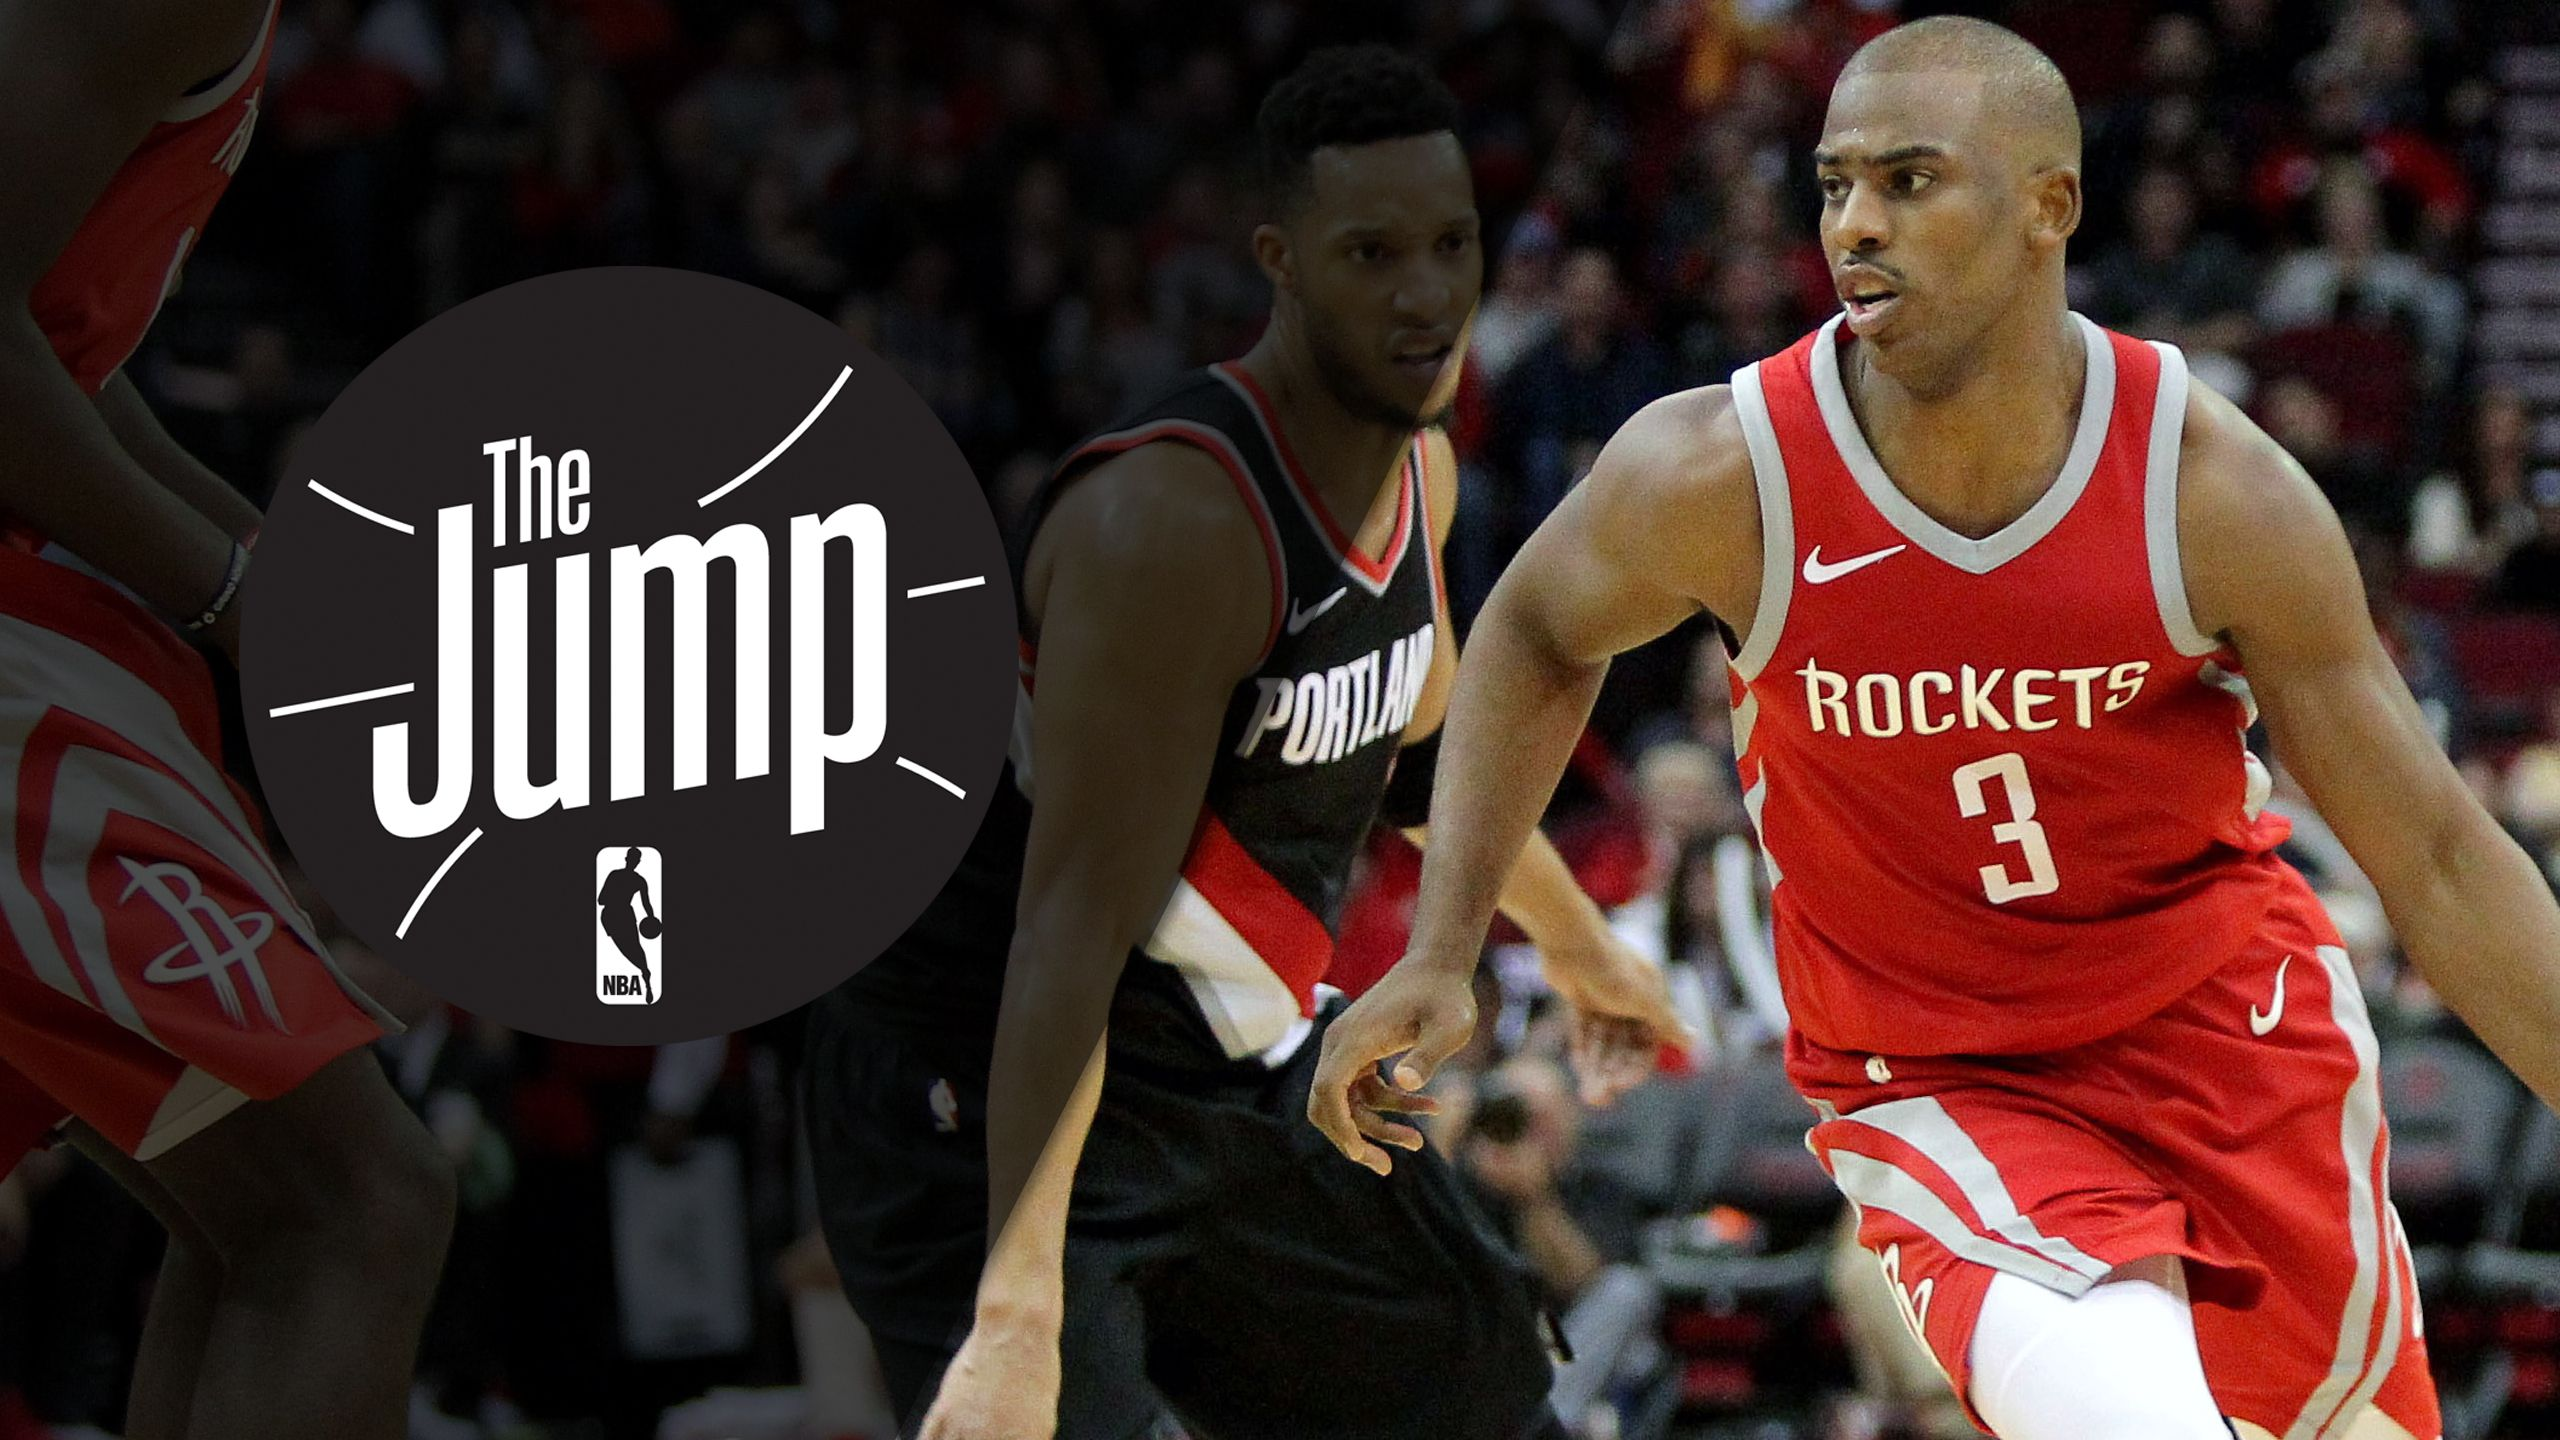 Mon, 1/15 - NBA: The Jump